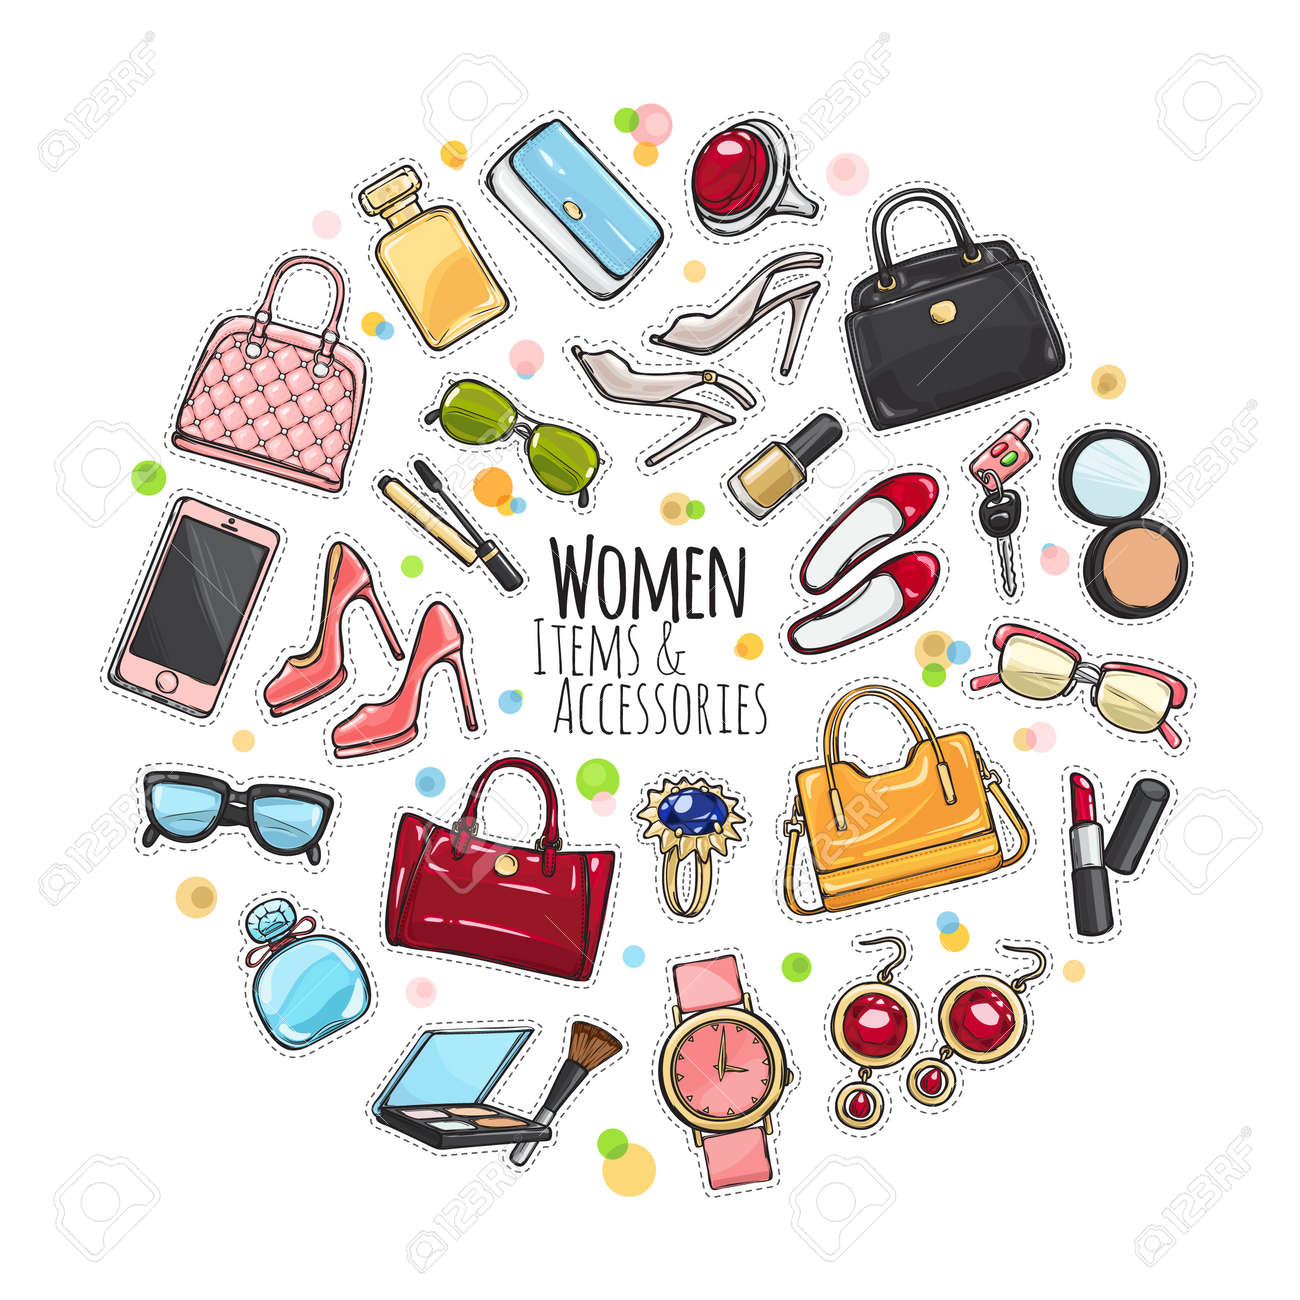 a0fd1ddd8730 Set Of Different Women Items And Accessories. Royalty Free Cliparts ...